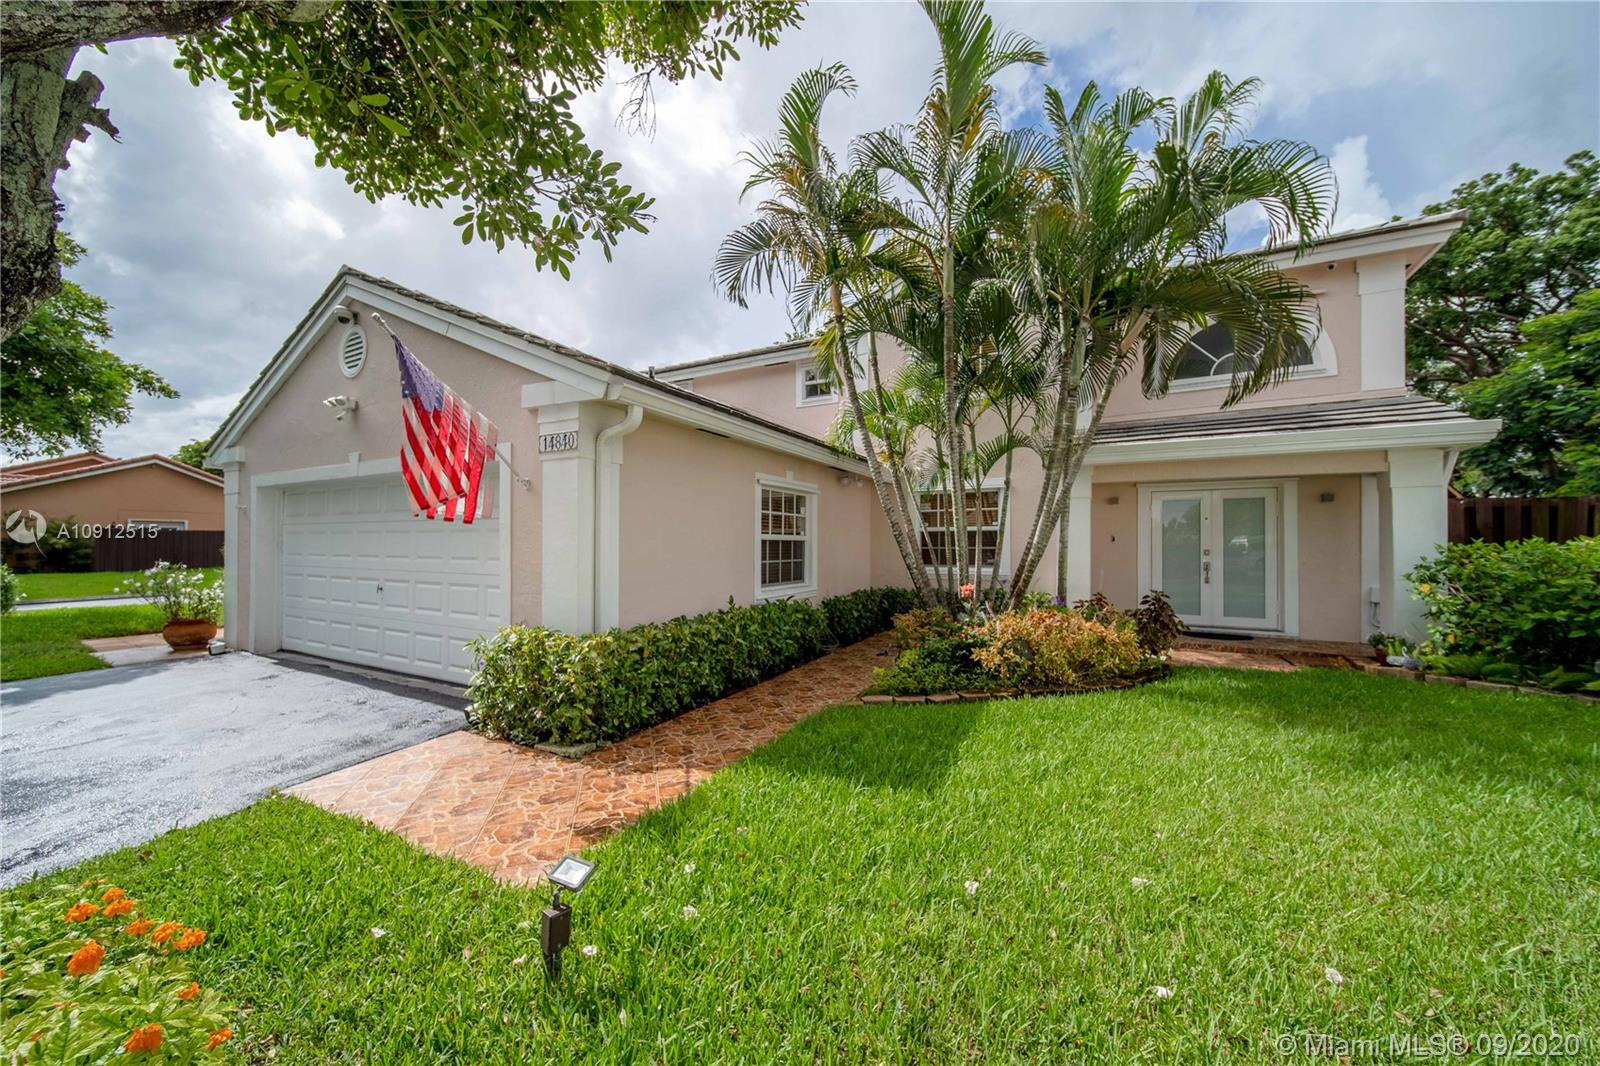 Lakes Of The Meadow - 14840 SW 46th Ln, Miami, FL 33185